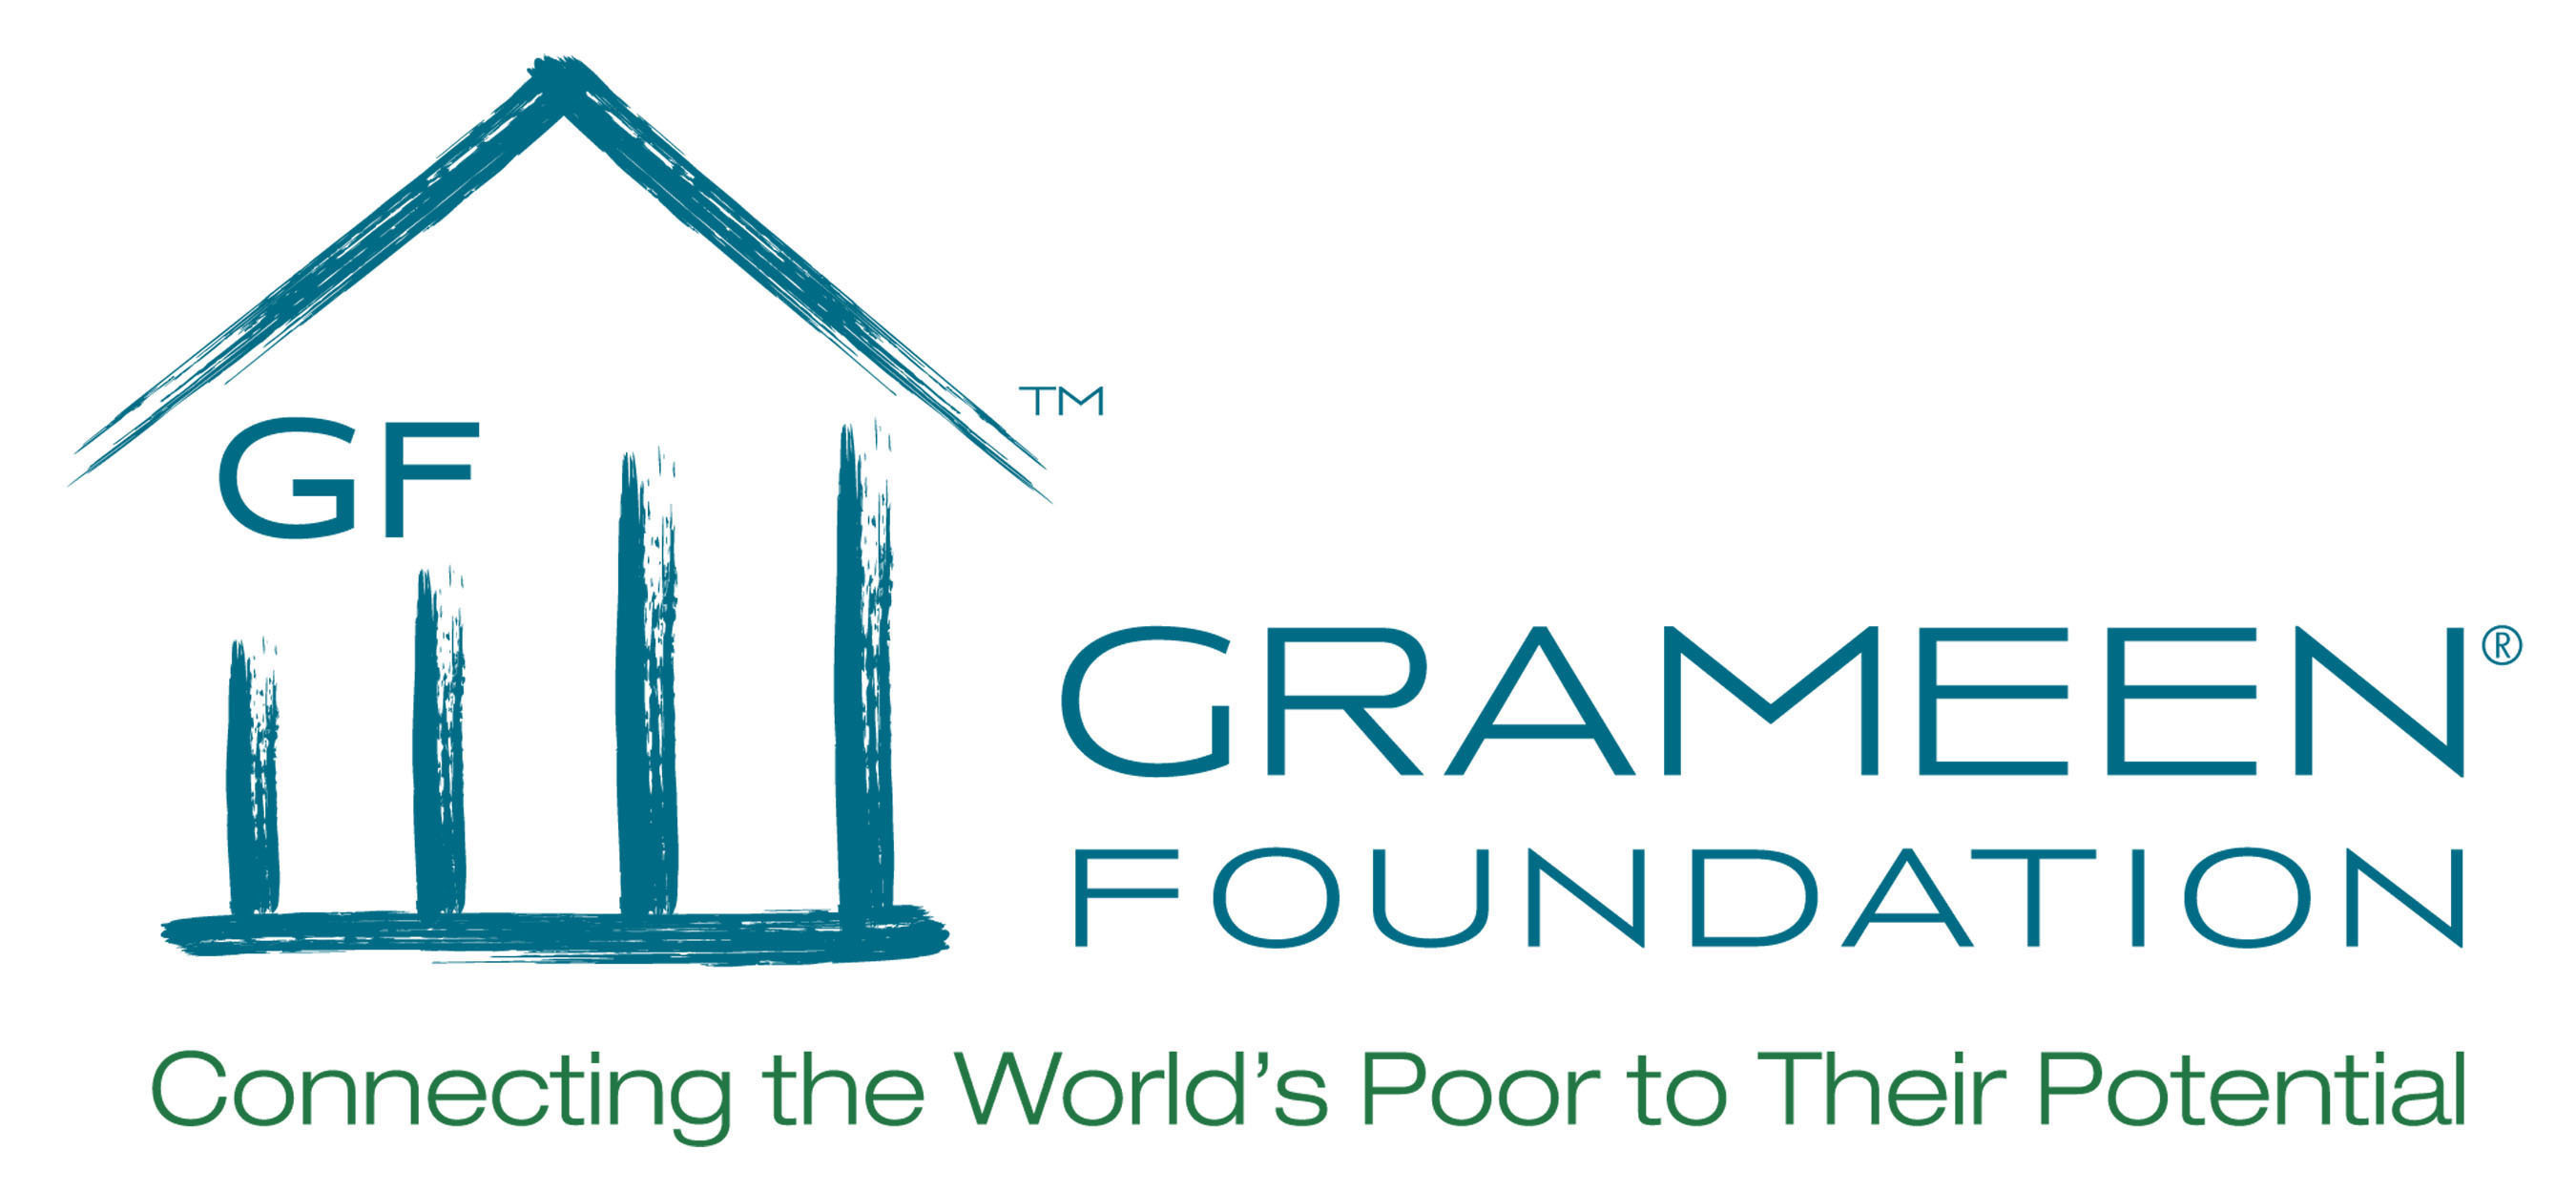 Grameen Foundation logo.